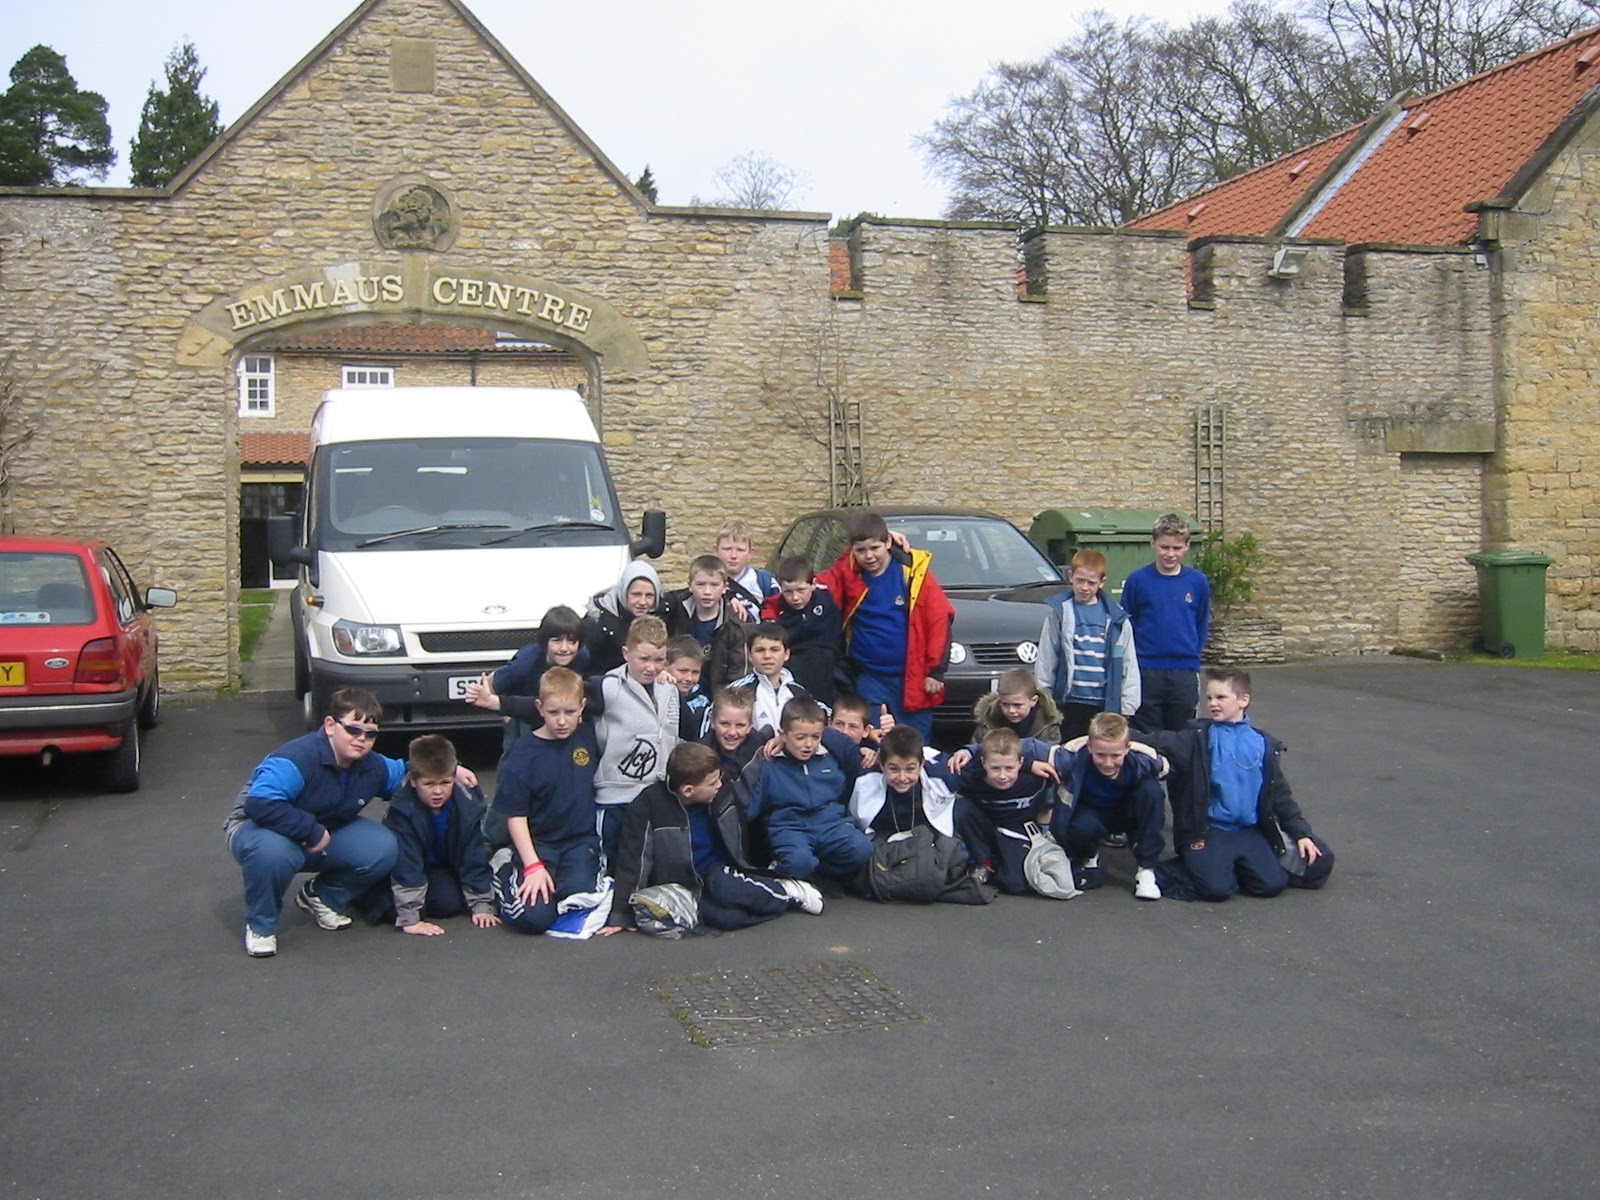 A previous 167 group at The Emmaus Centre.